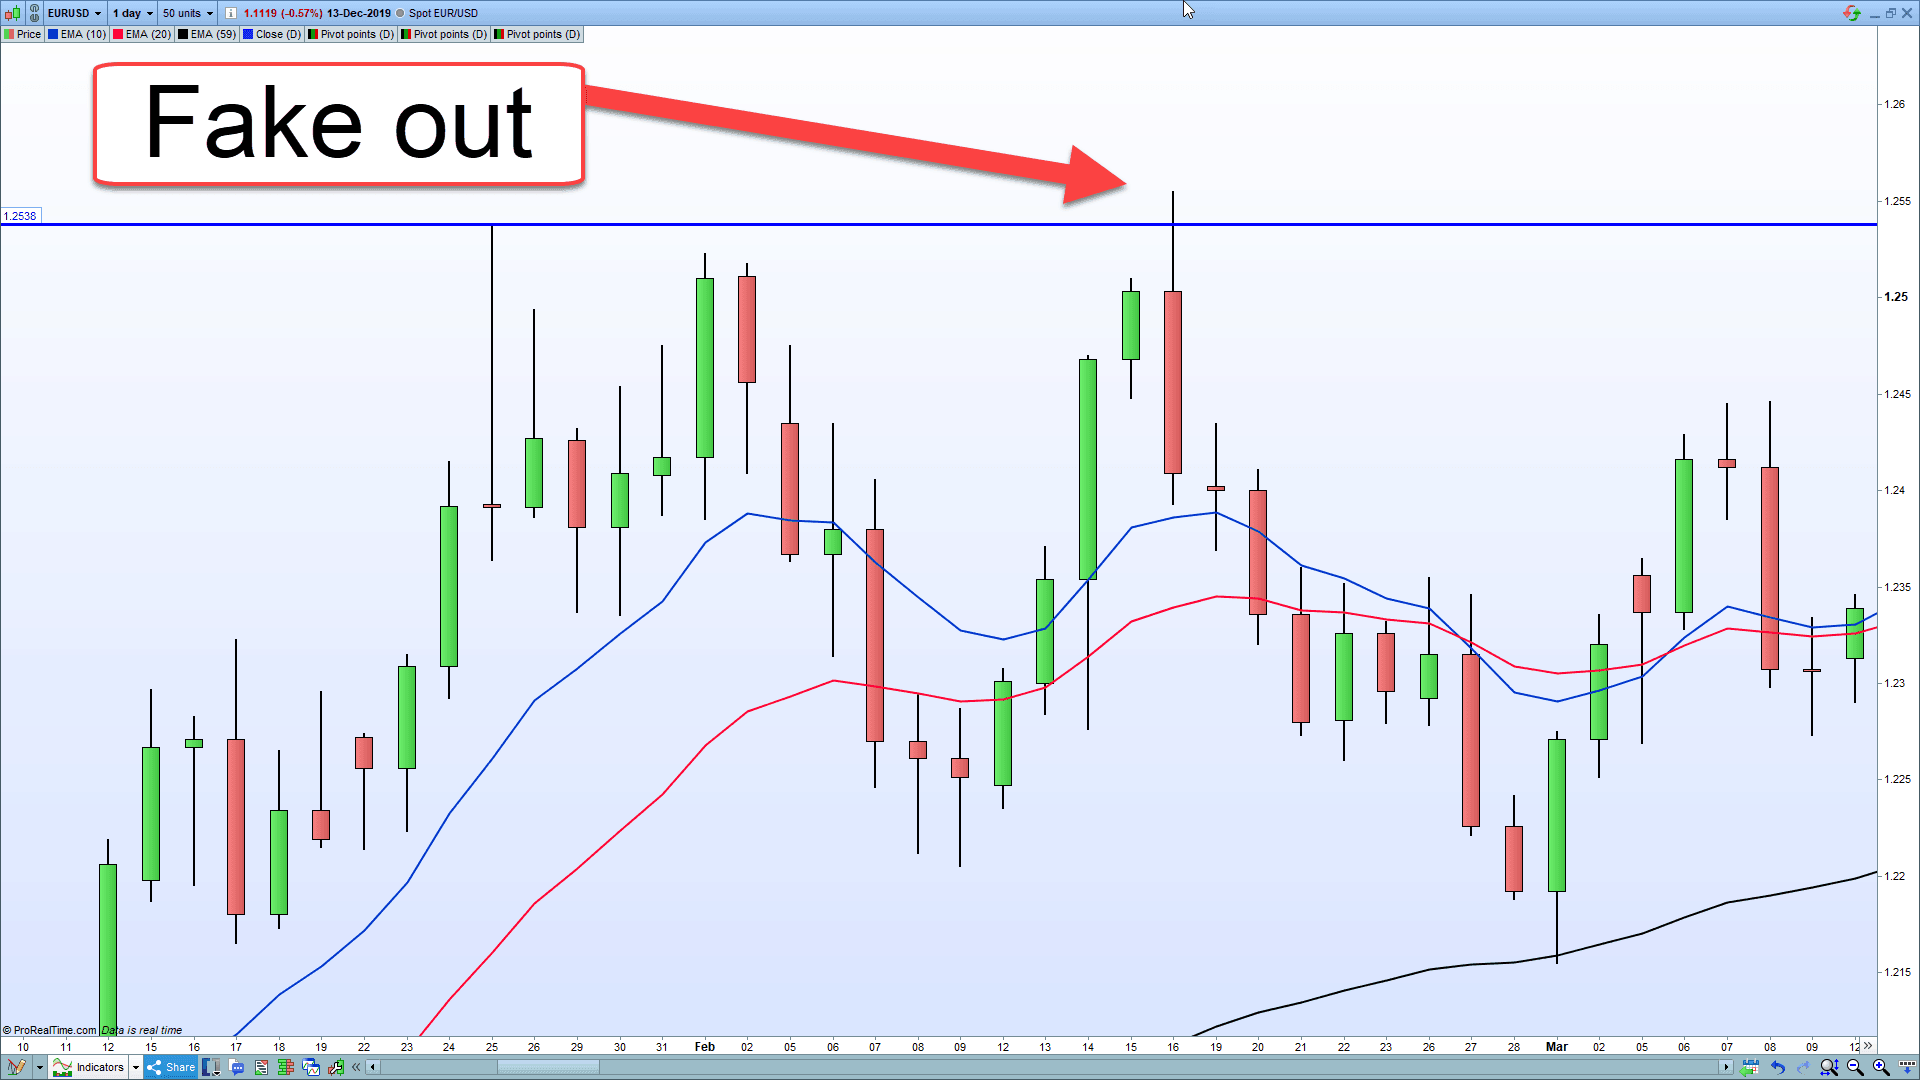 A price action fakeout trade showing the market breaking out then faking out.